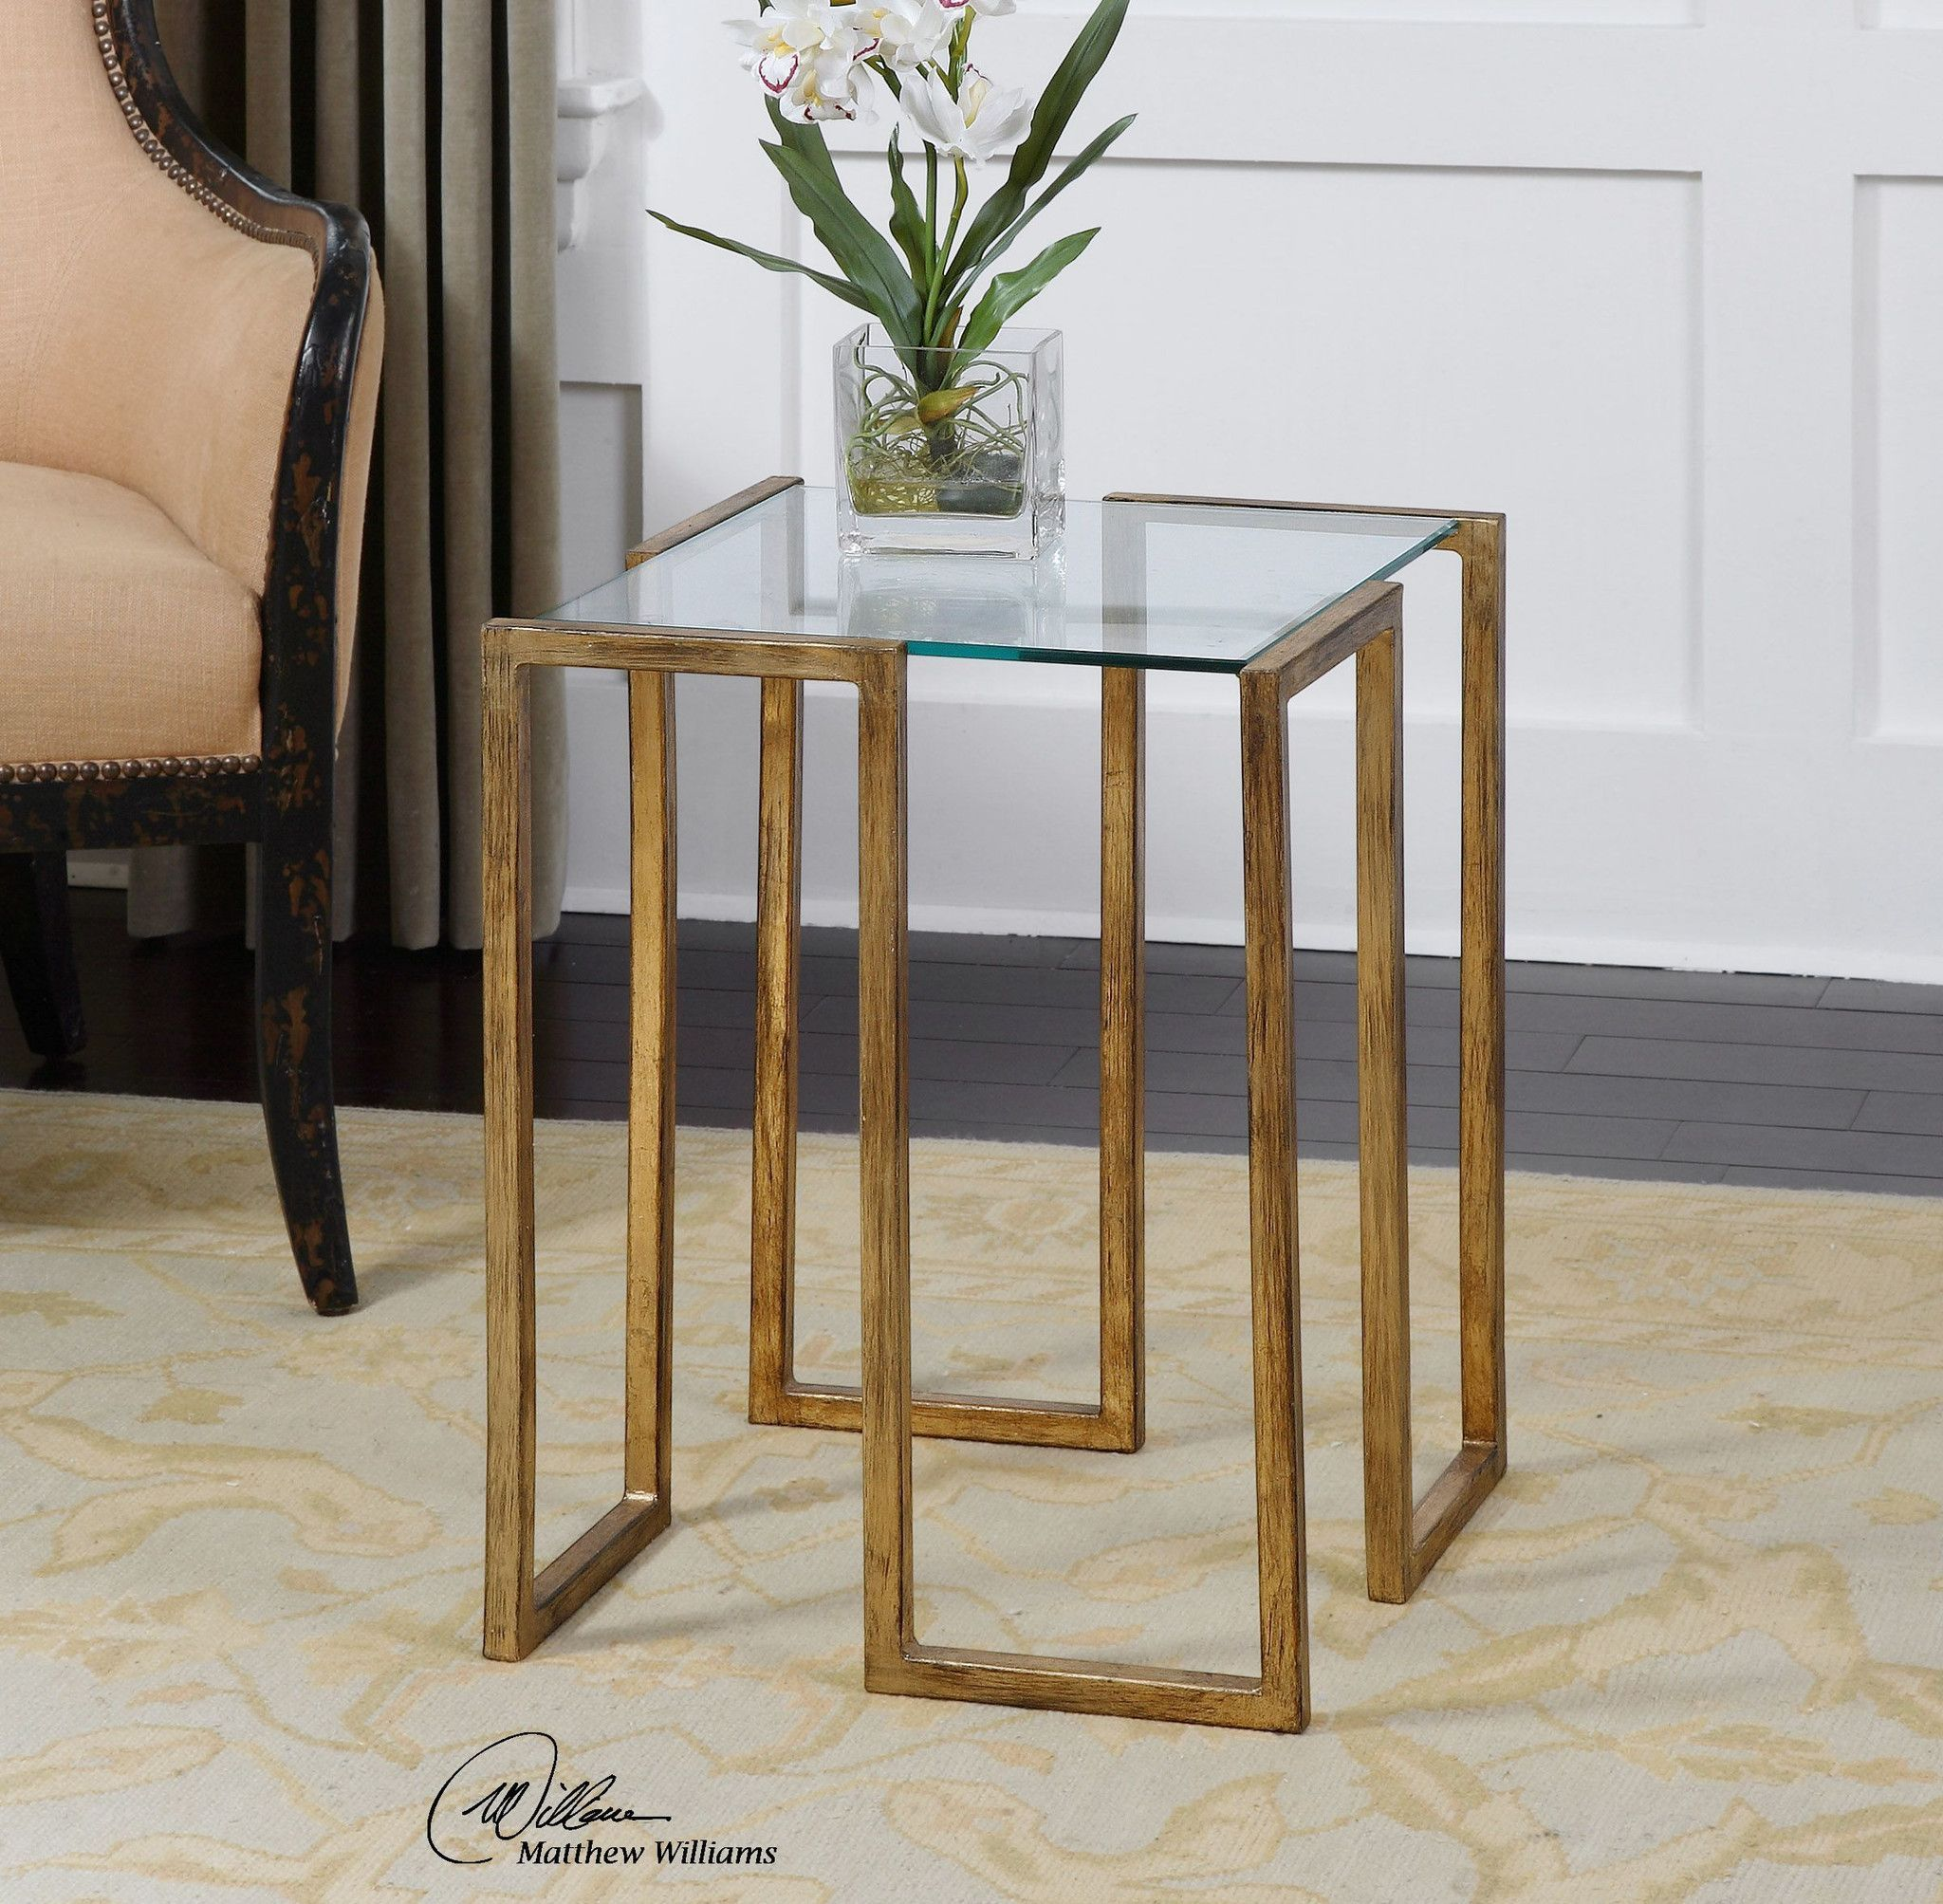 Uttermost mirrin accent table products pinterest products uttermost mirrin antique gold accent table overstock shopping great deals on uttermost coffee sofa end tables geotapseo Images